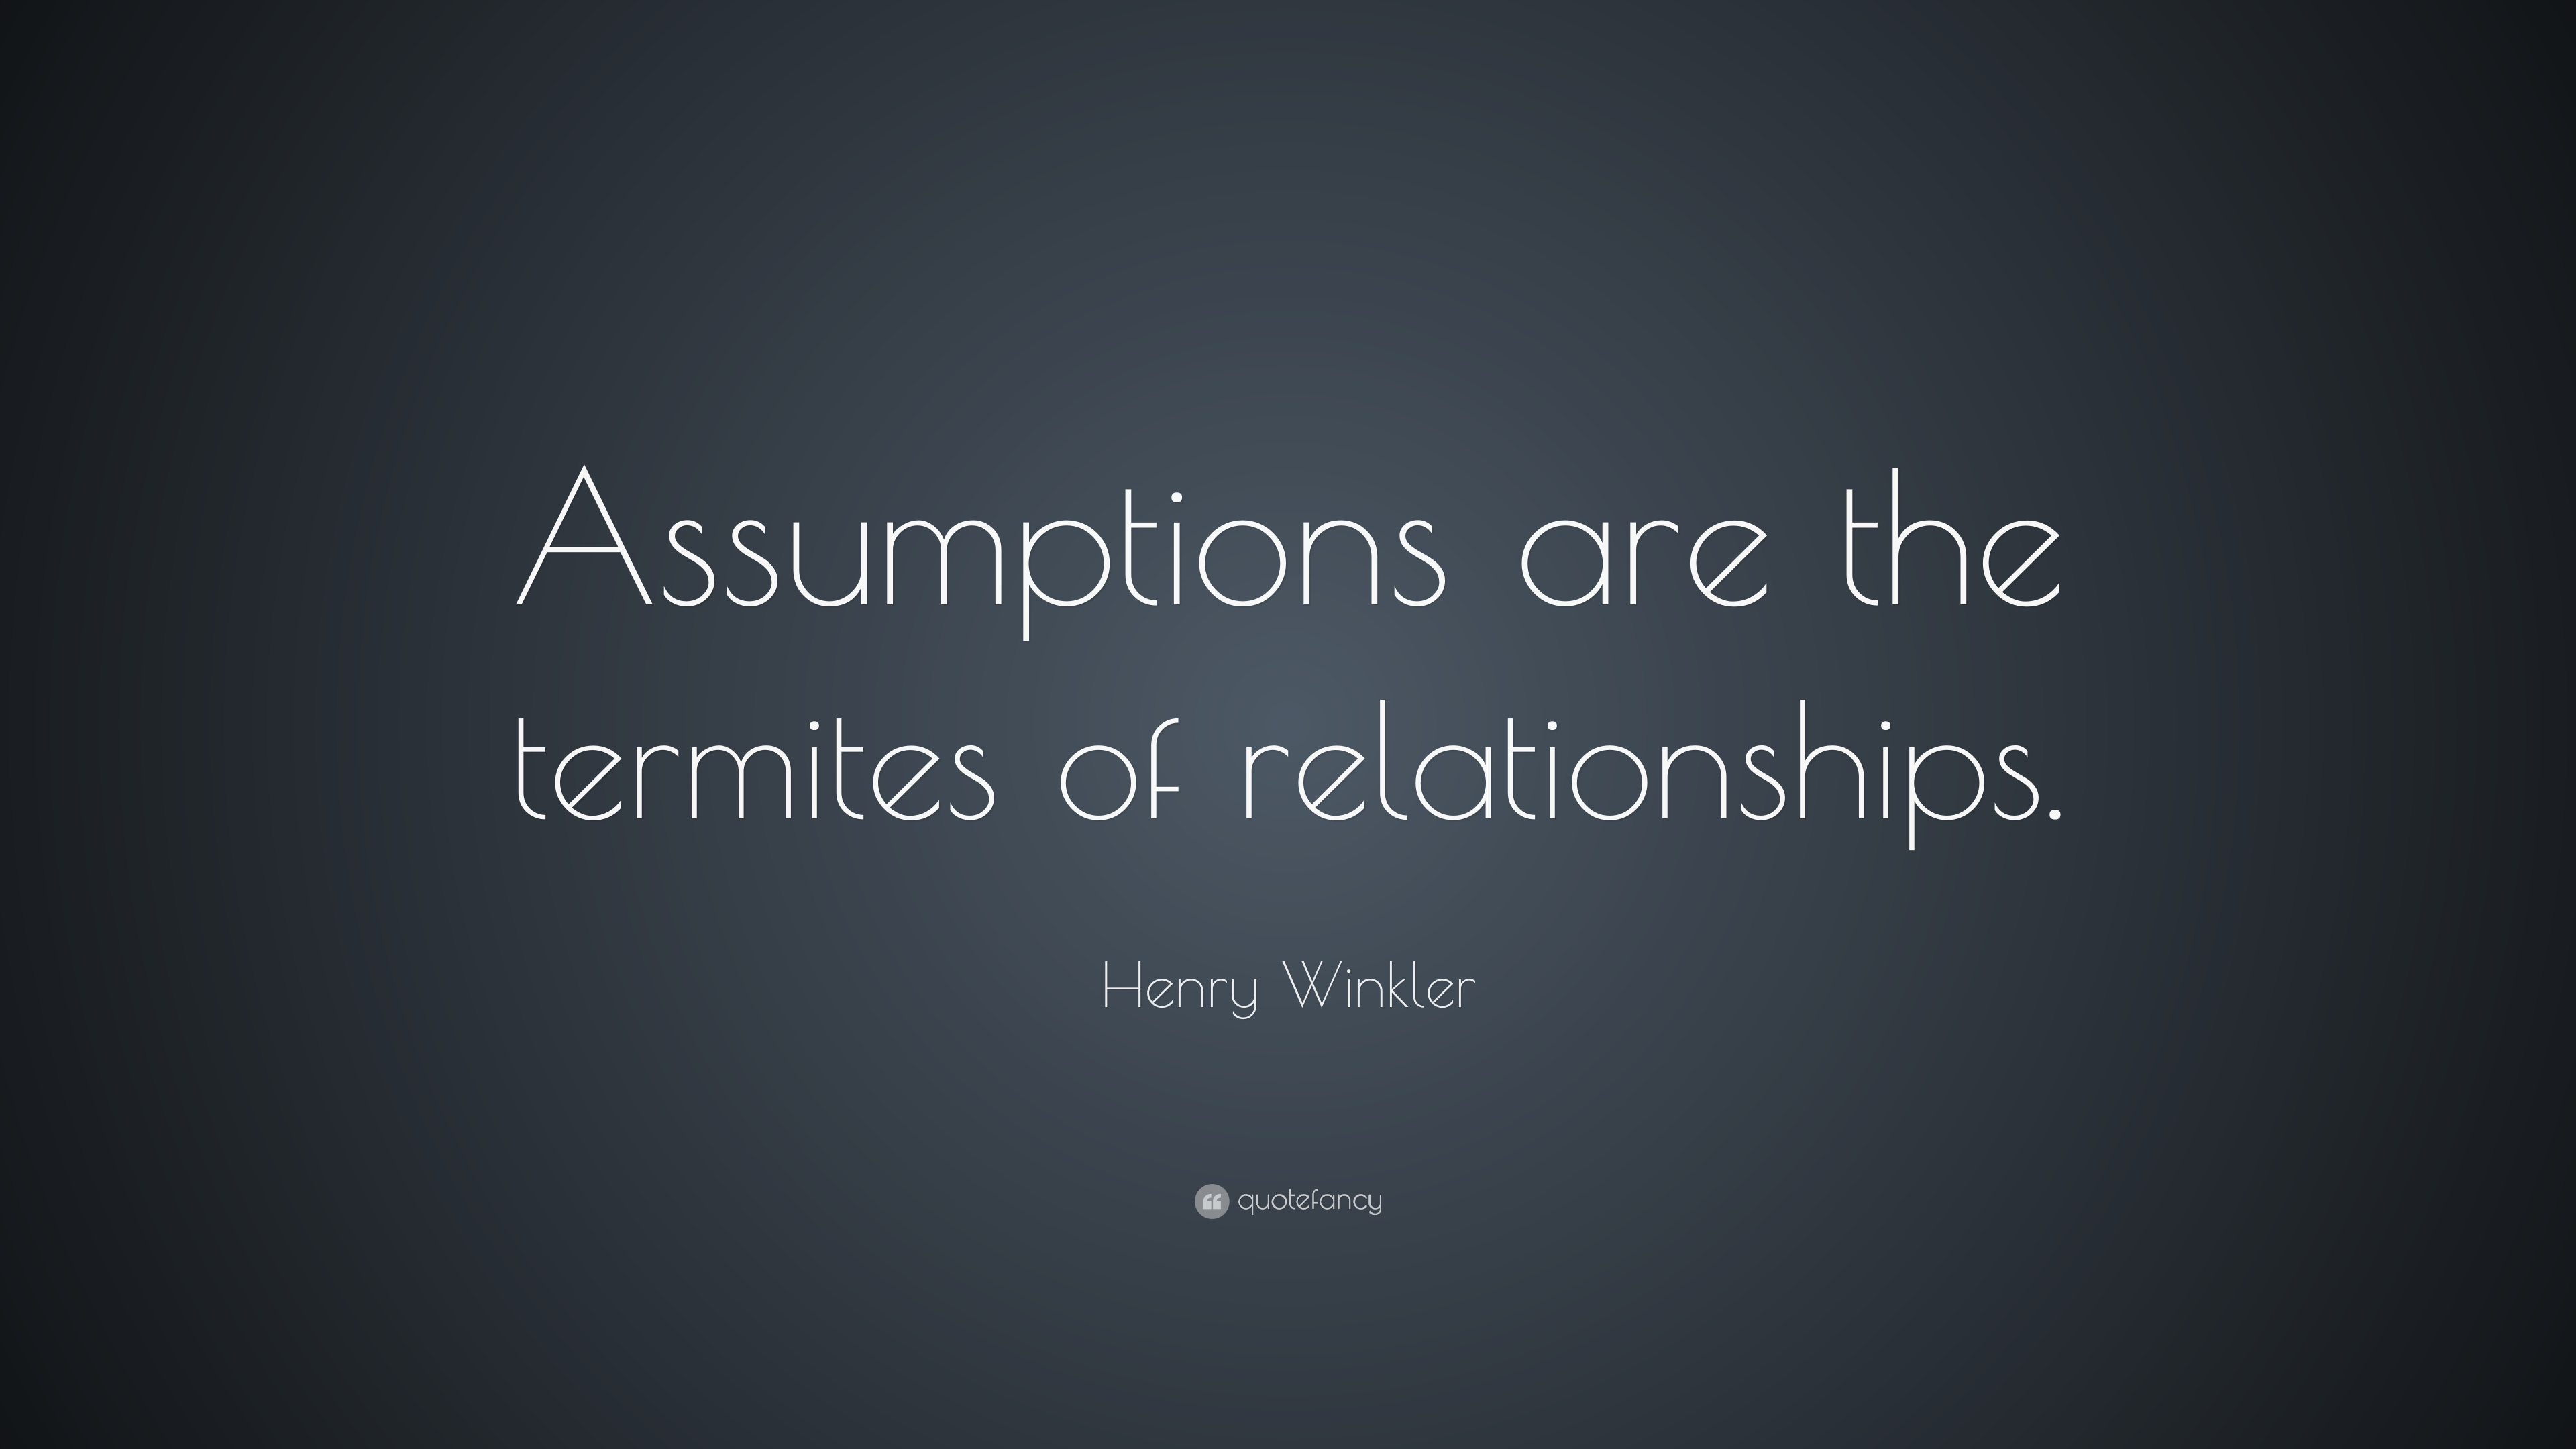 Quotes For Relationships Relationship Quotes 57 Wallpapers  Quotefancy